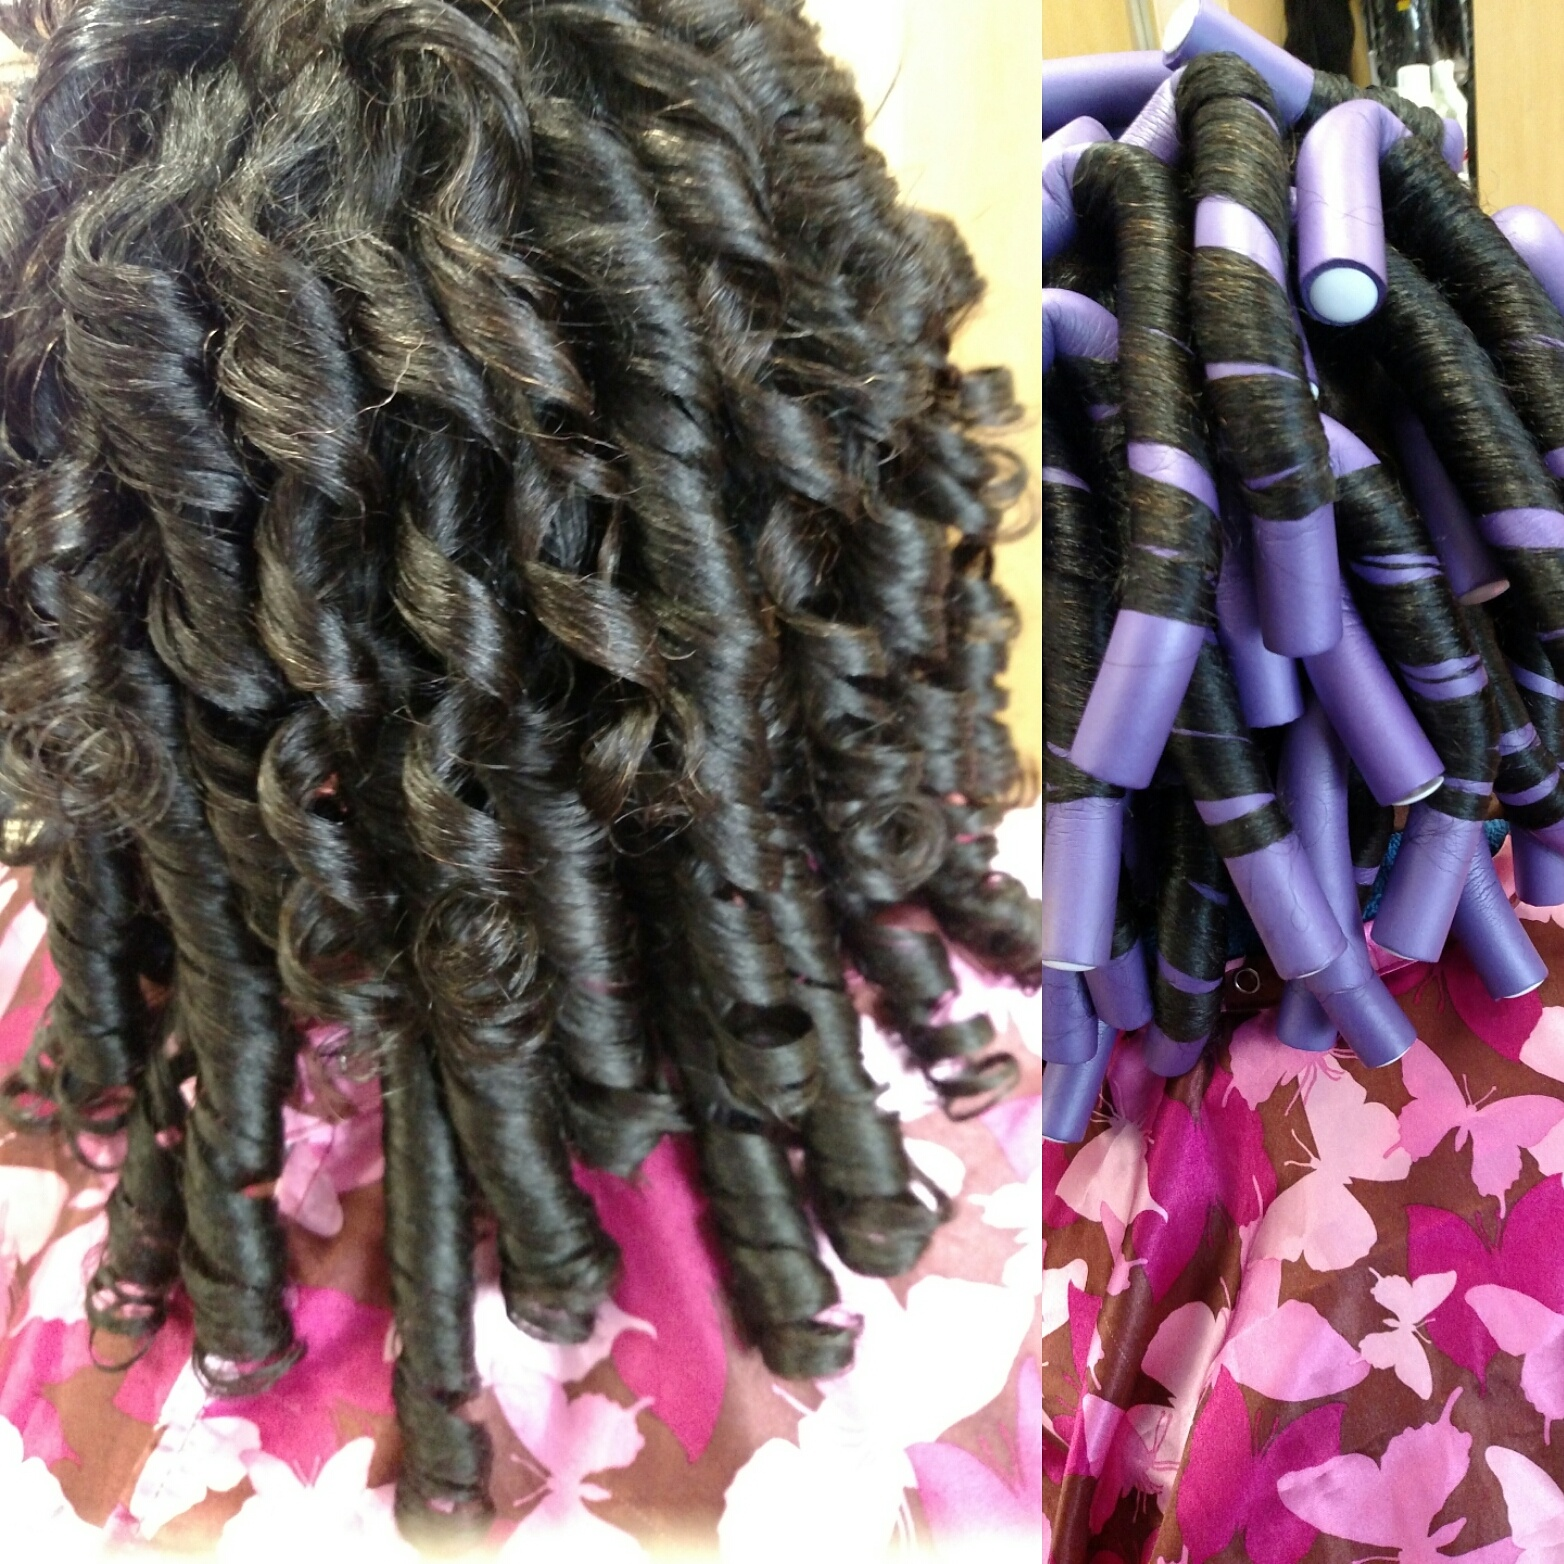 House Design Didi Games Perming Hair With Curlformers Phenomenalhaircare Don T Get